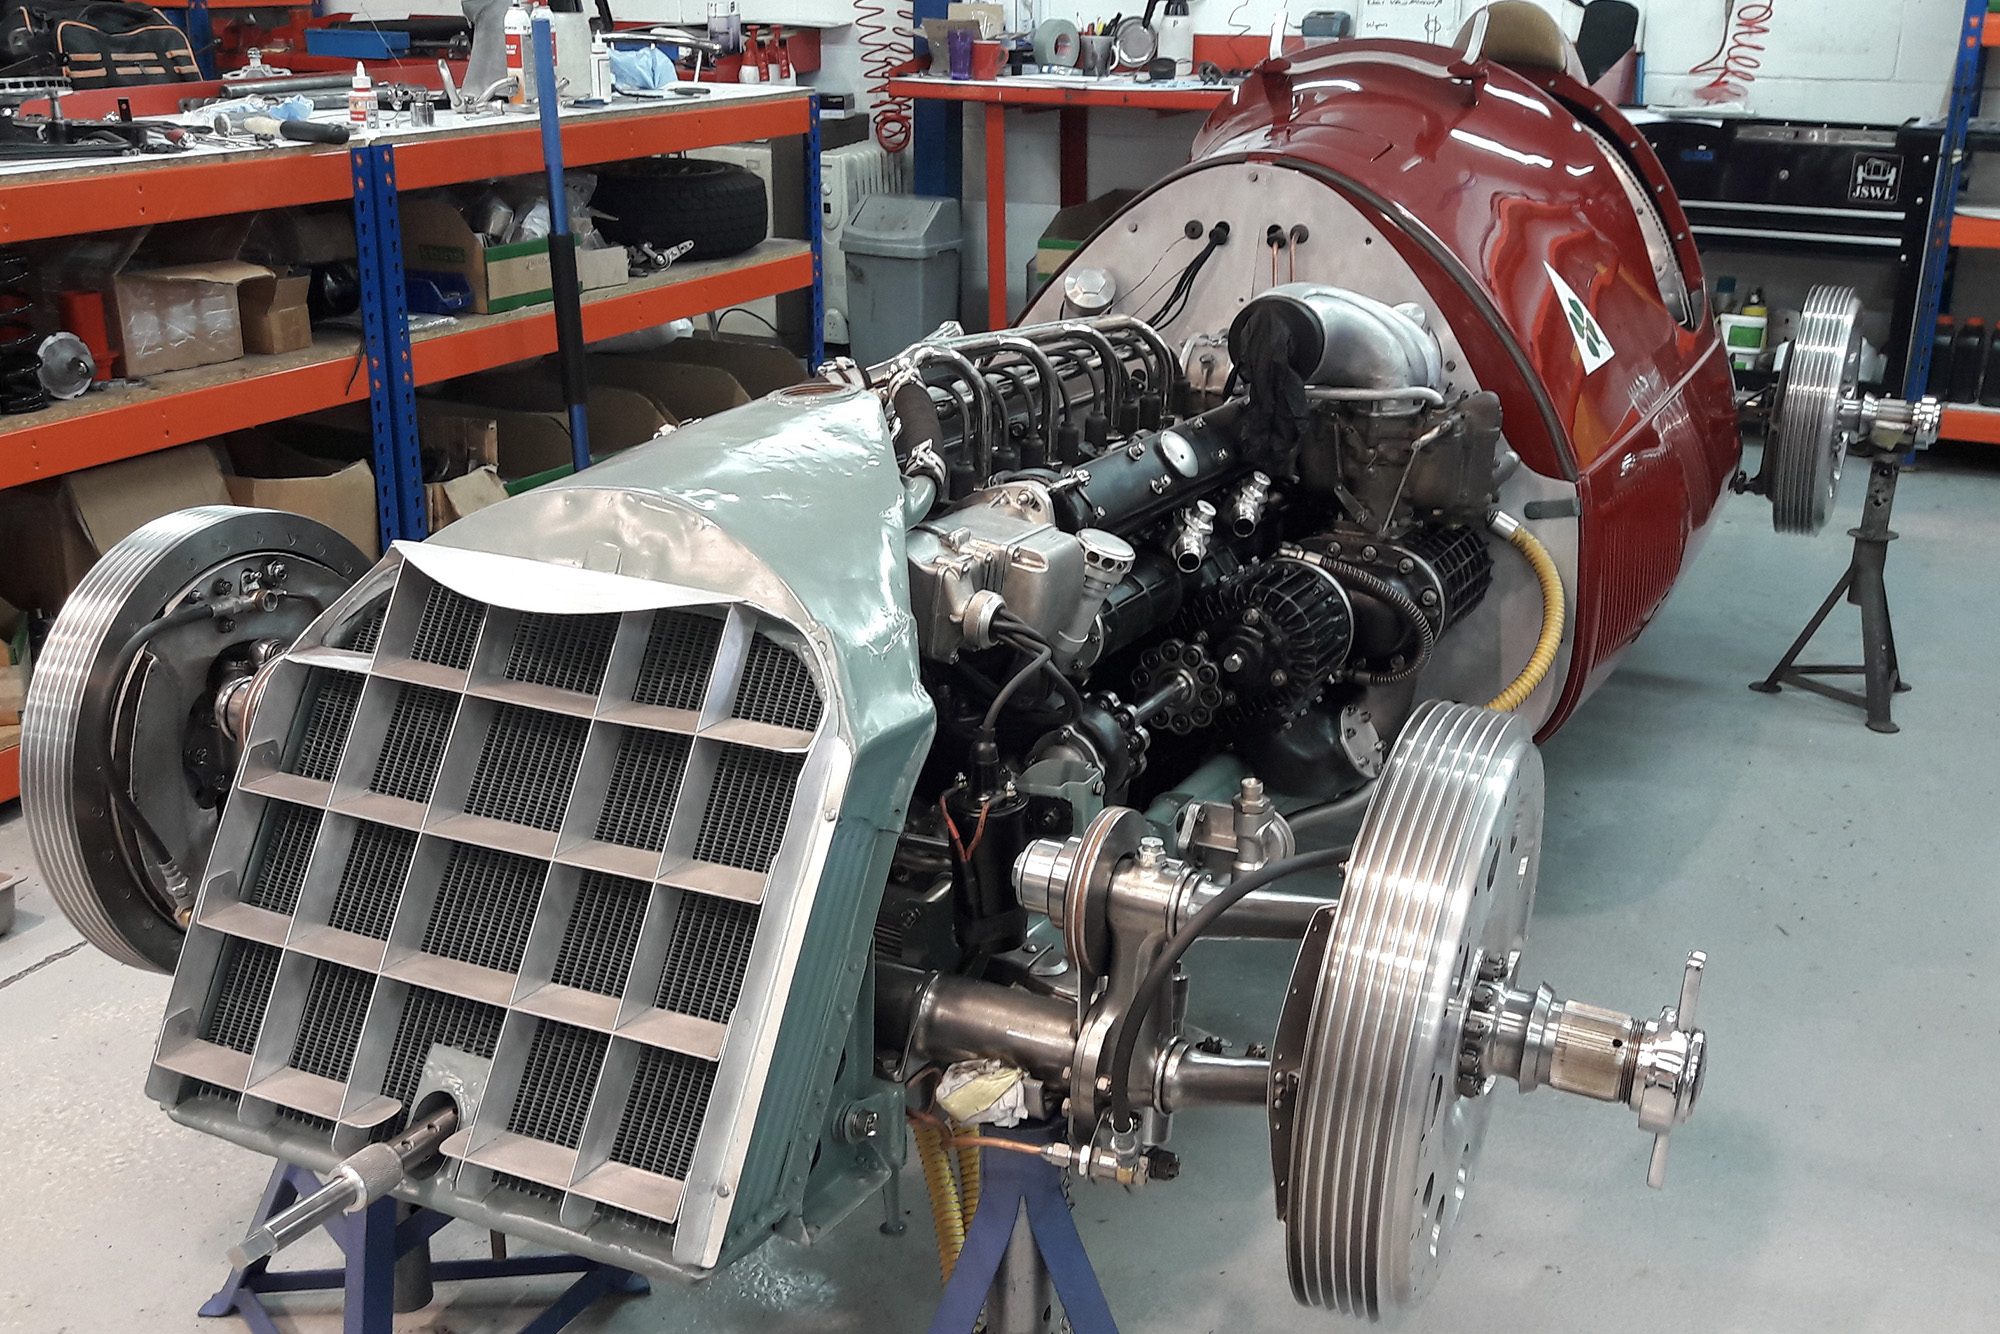 Almost completely restored Alfa 158 in the workshop